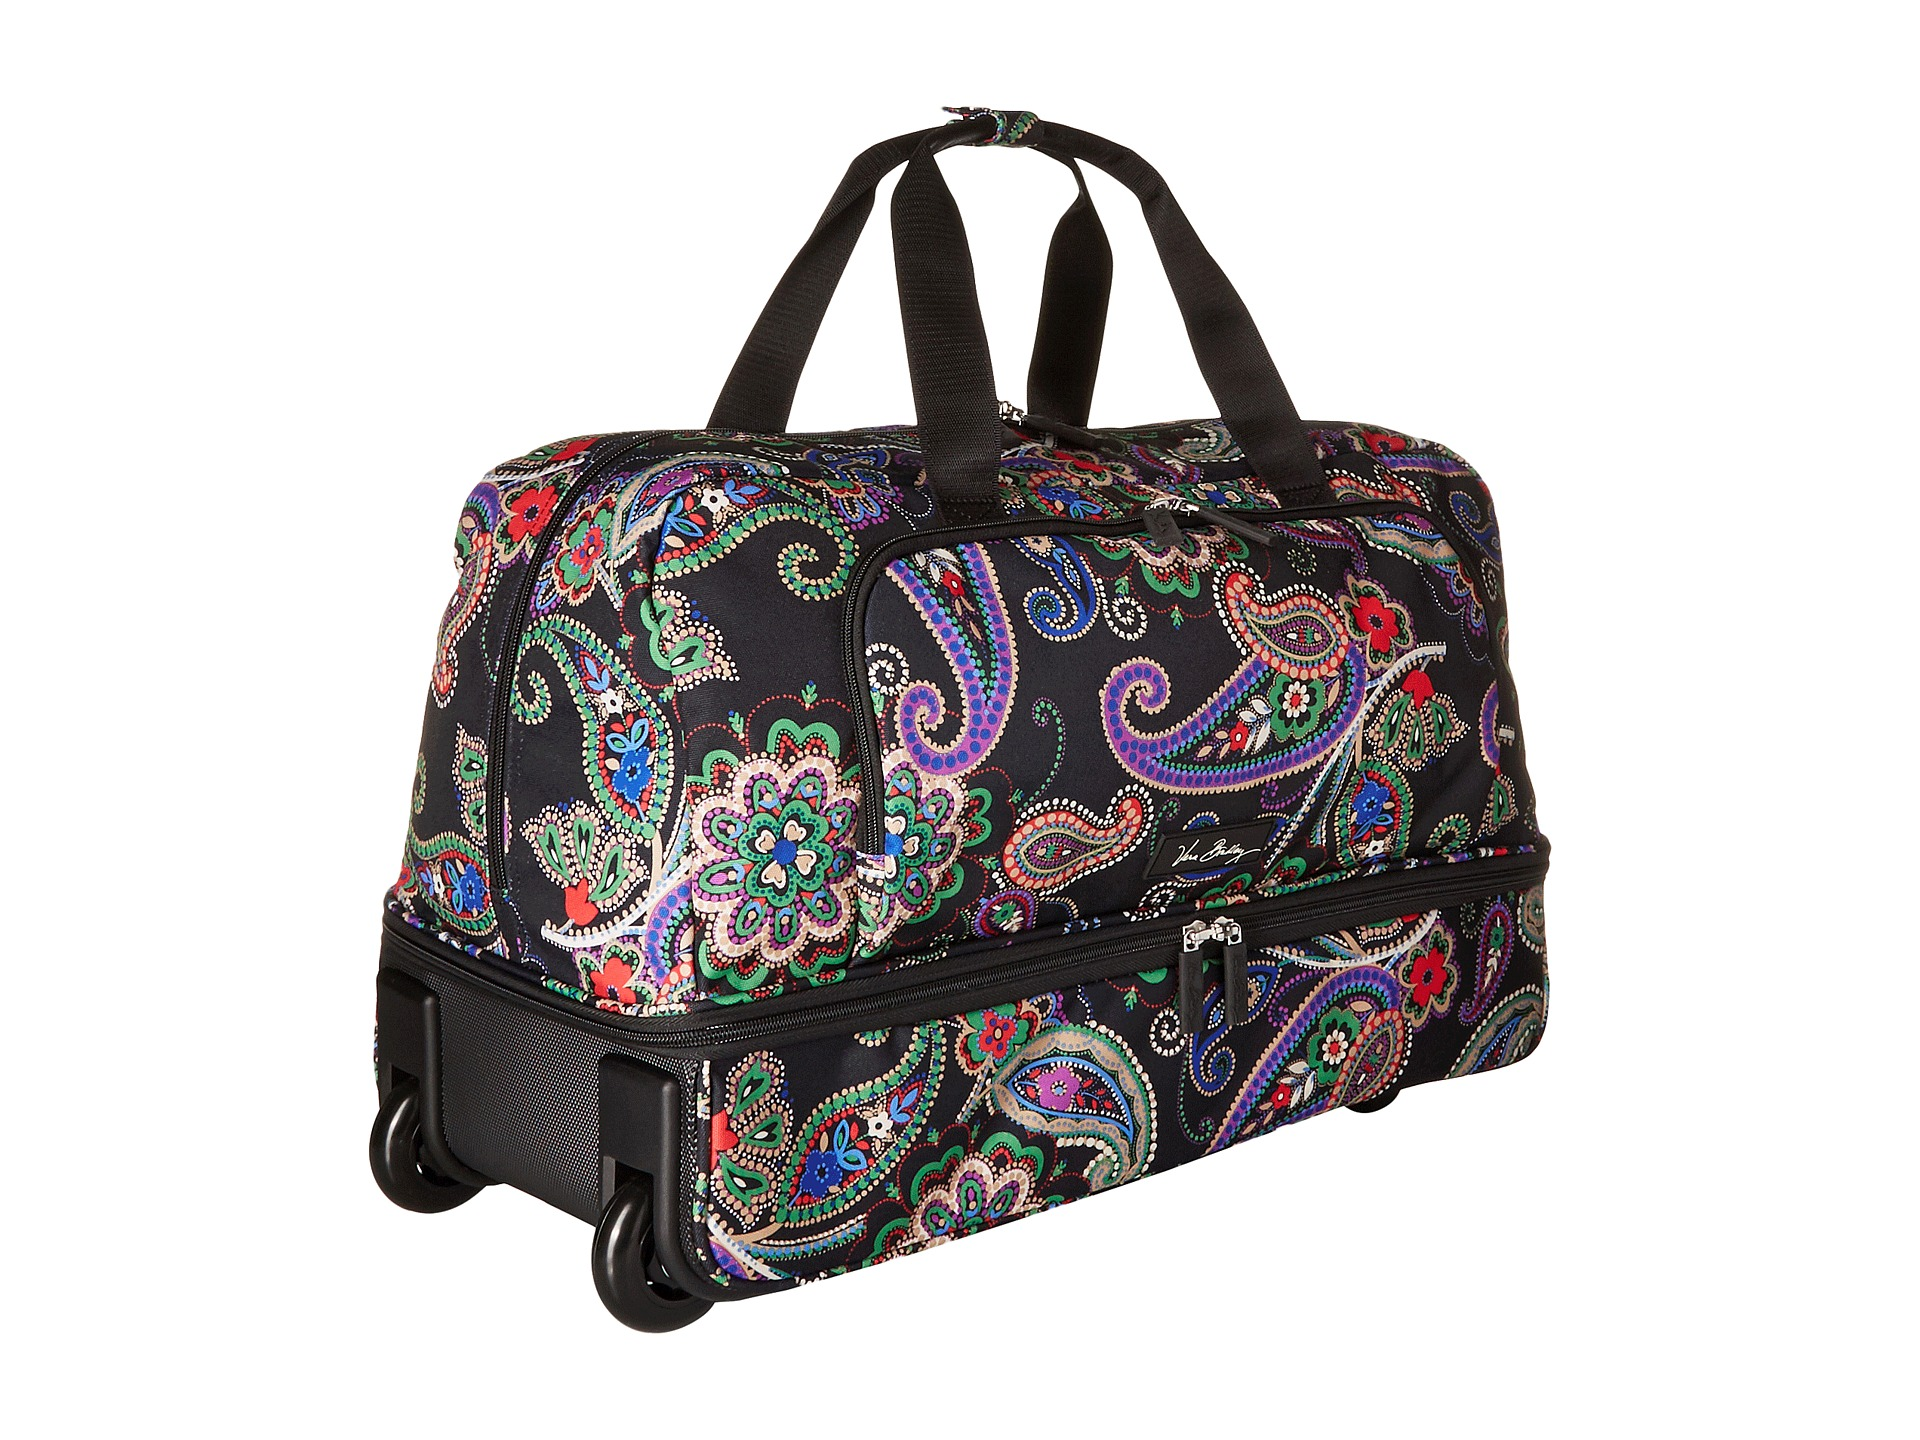 Shop vera bradley bags on sale from Vera Bradley and from wxilkjkj.tk, wxilkjkj.tk, Macy's and many more. Find thousands of new high fashion items in one place.